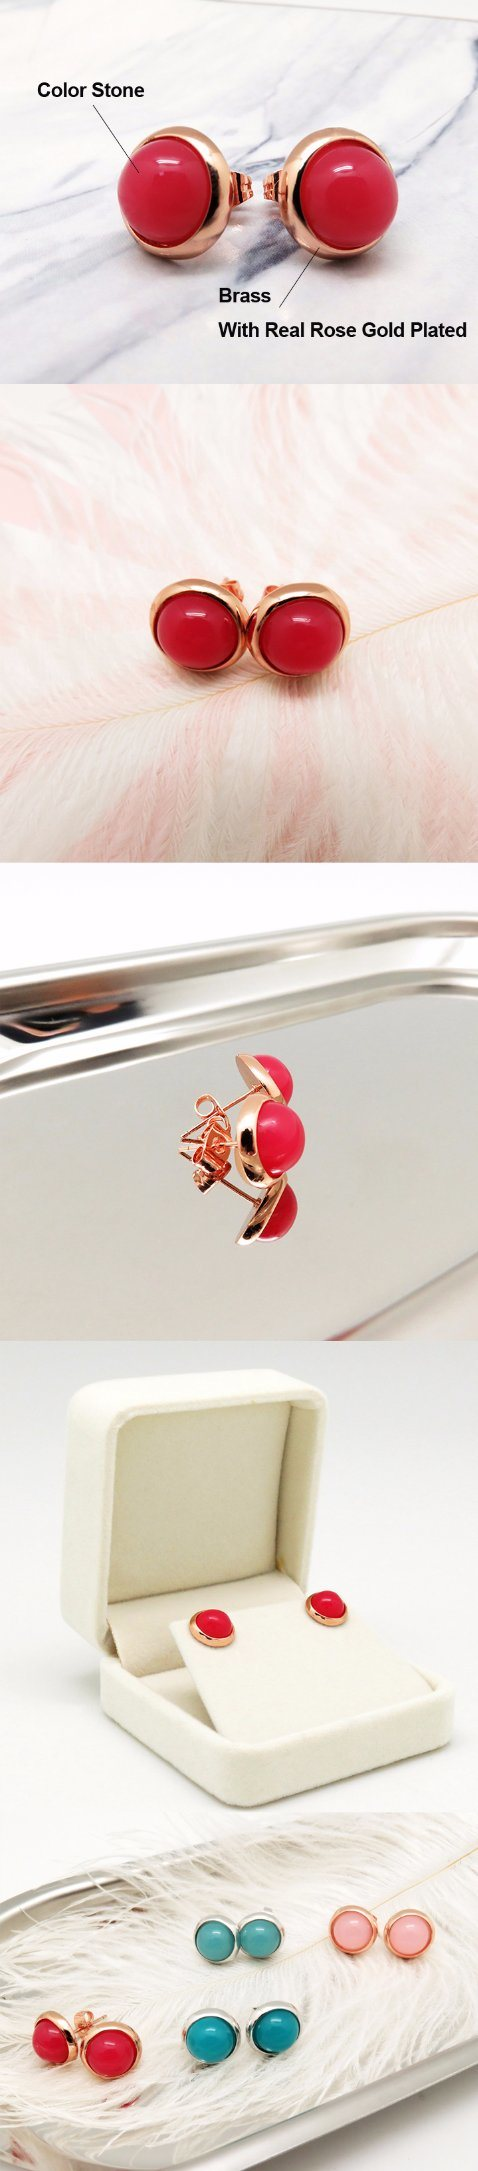 New Designs Rose Gold Plated Single Stone Earring Stud